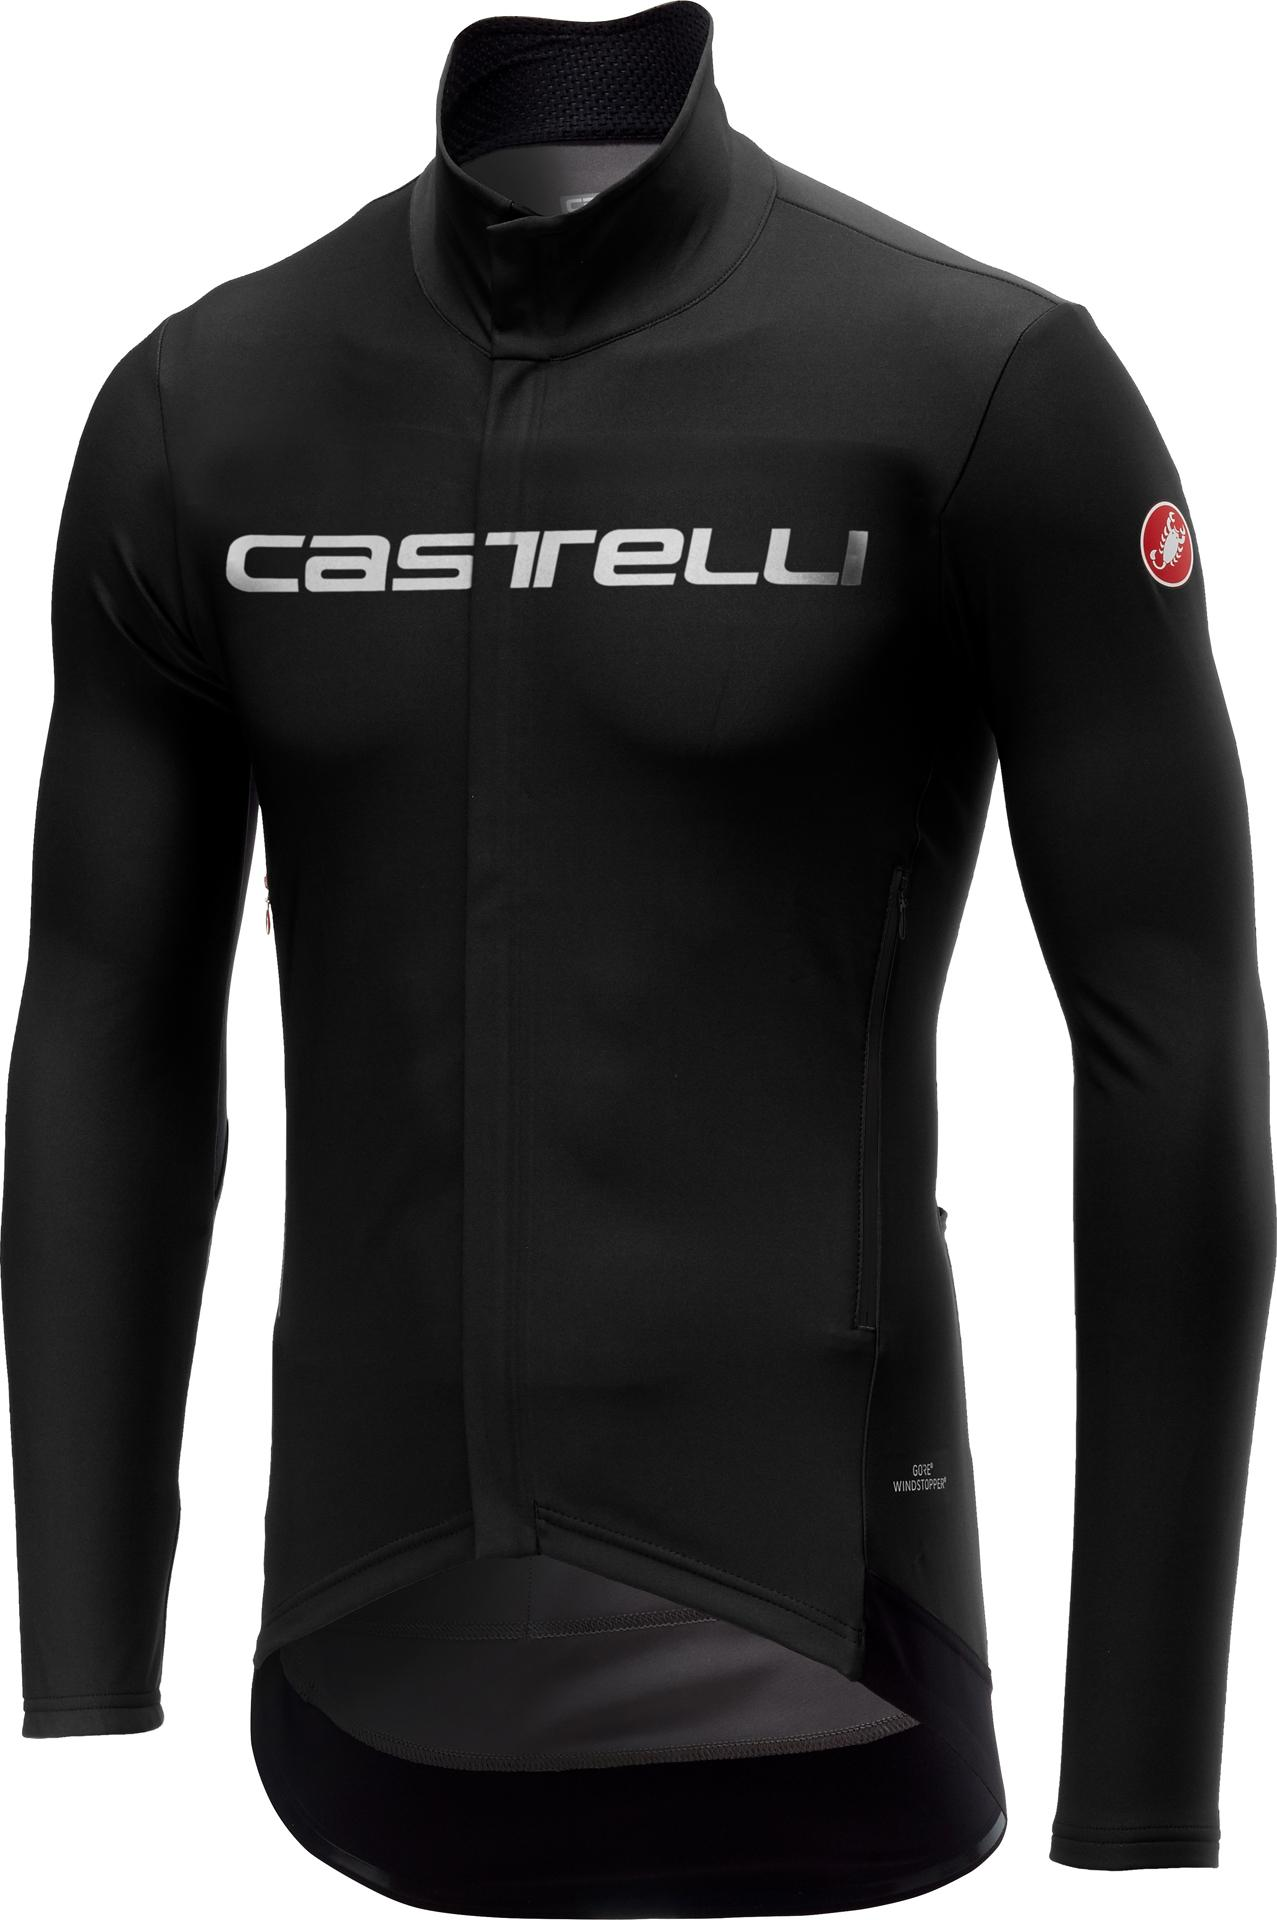 Castelli Fietsjack waterafstotend Heren Zwart  / CA Perfetto Long Sleeve Black